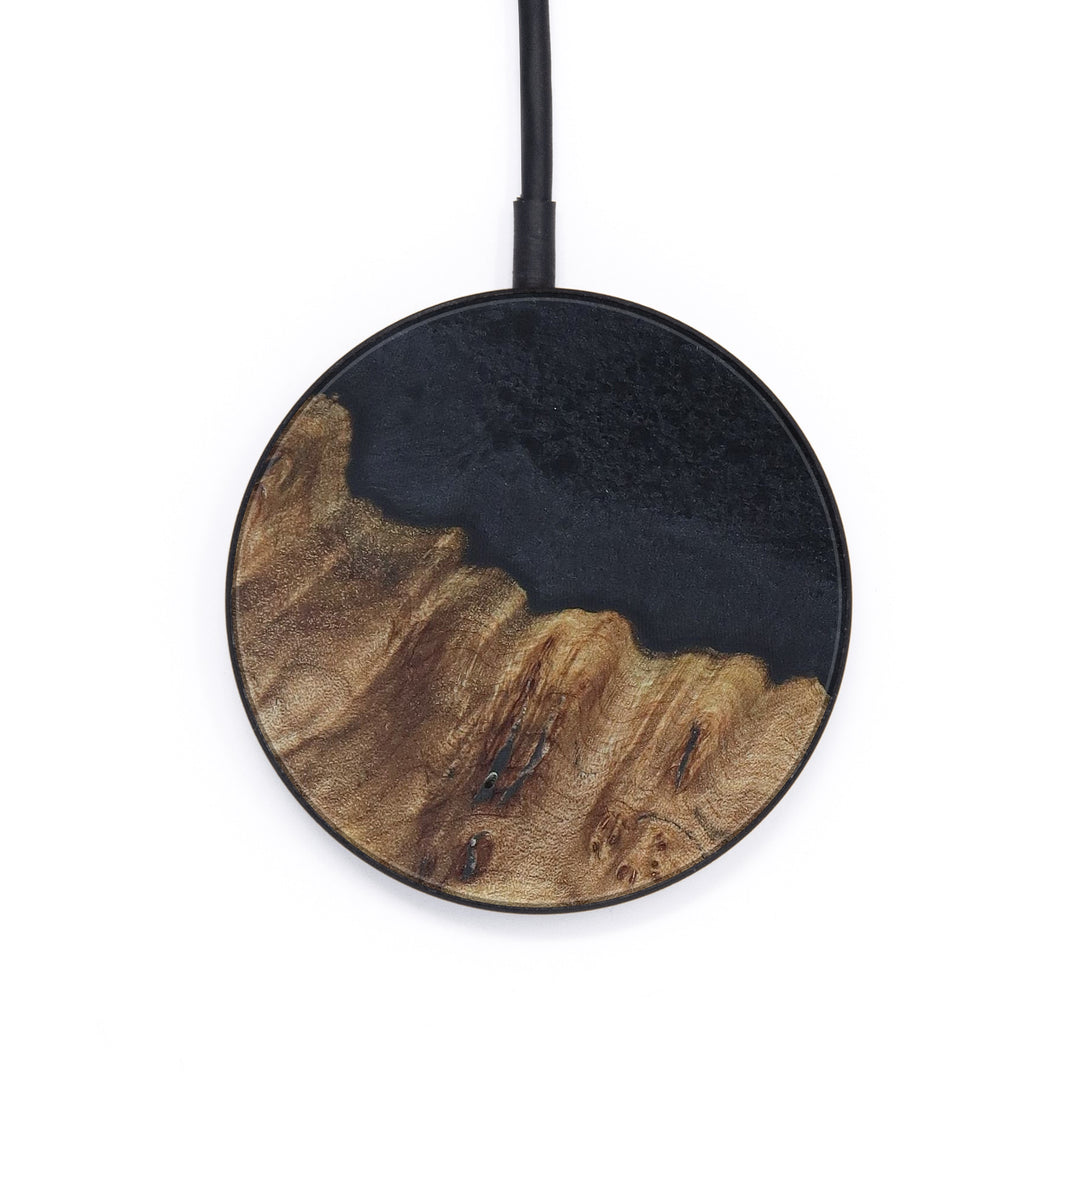 Circle Wood+Resin Wireless Charger - Inge (Pure Black, 410853)